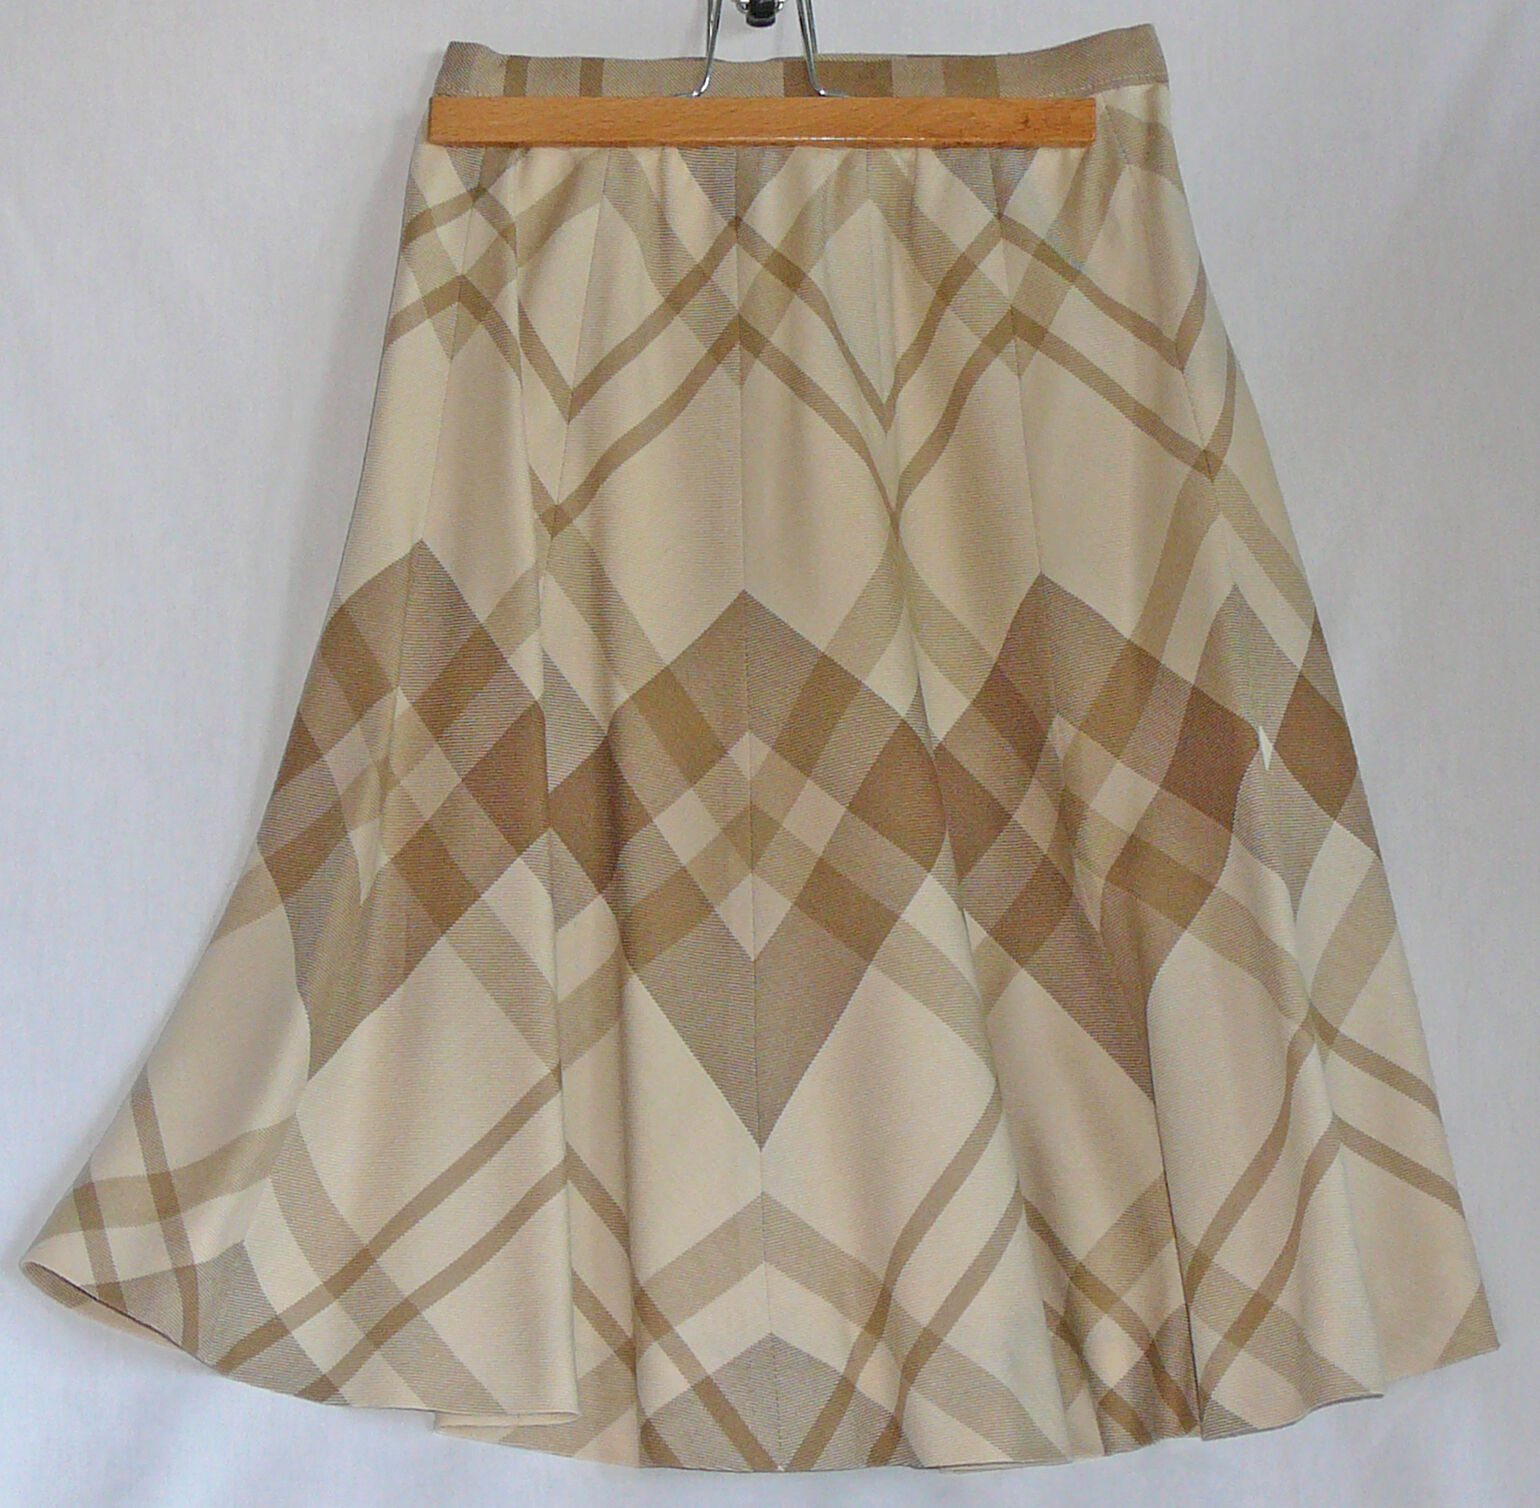 Quality fine woolen flaired gored skirt by Helft's